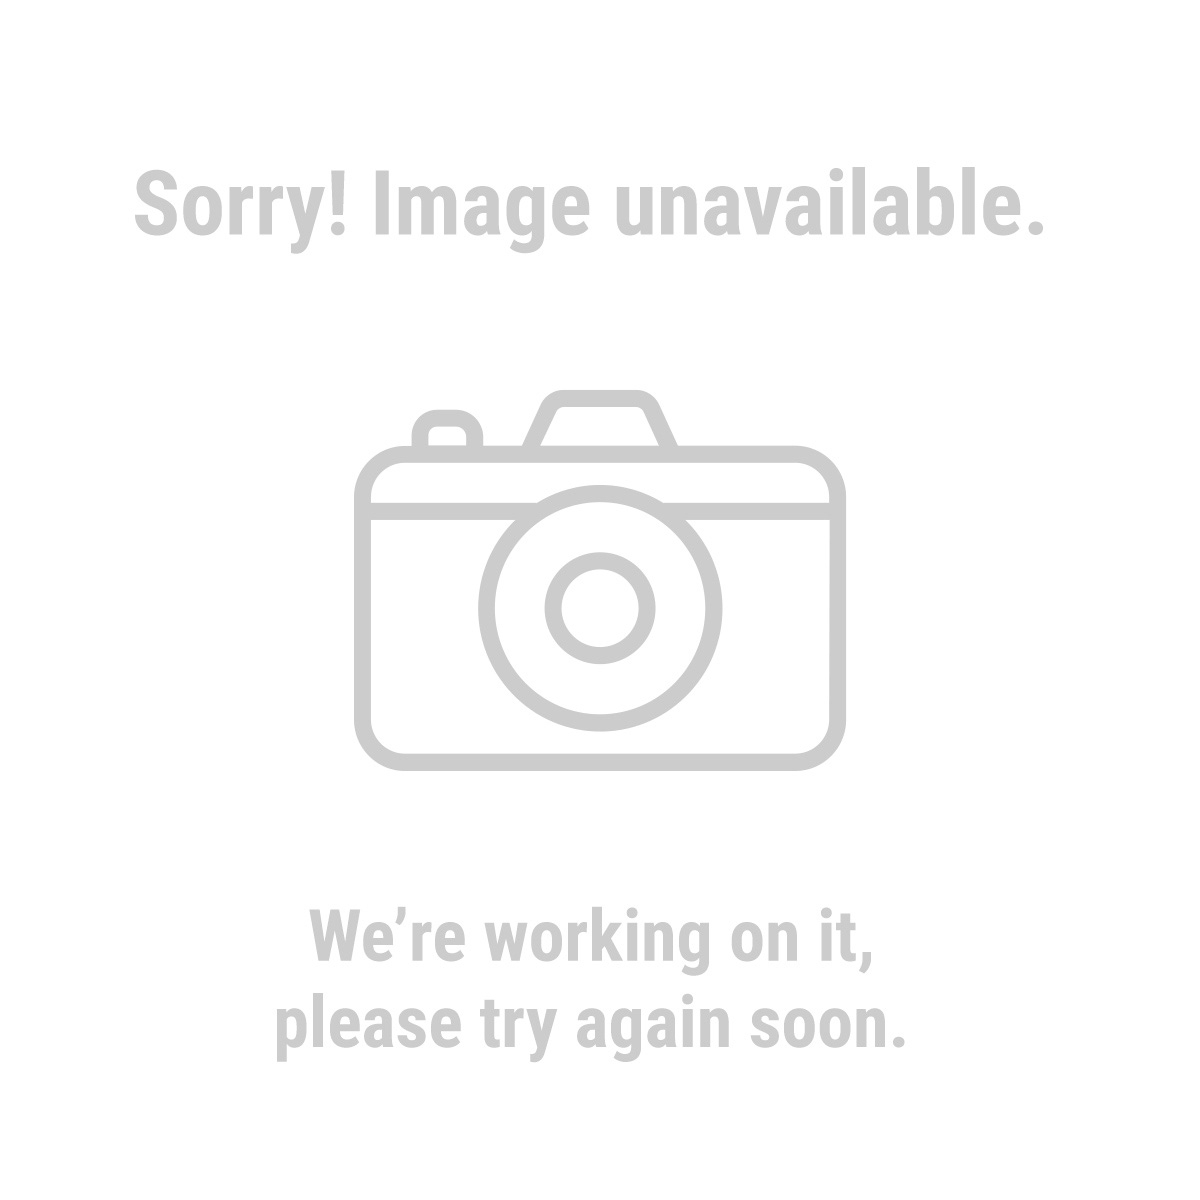 "Chicago Electric Welding 42920 0.035"" ER70S-6  Carbon Steel Welding Wire, 10 Lb. Roll"